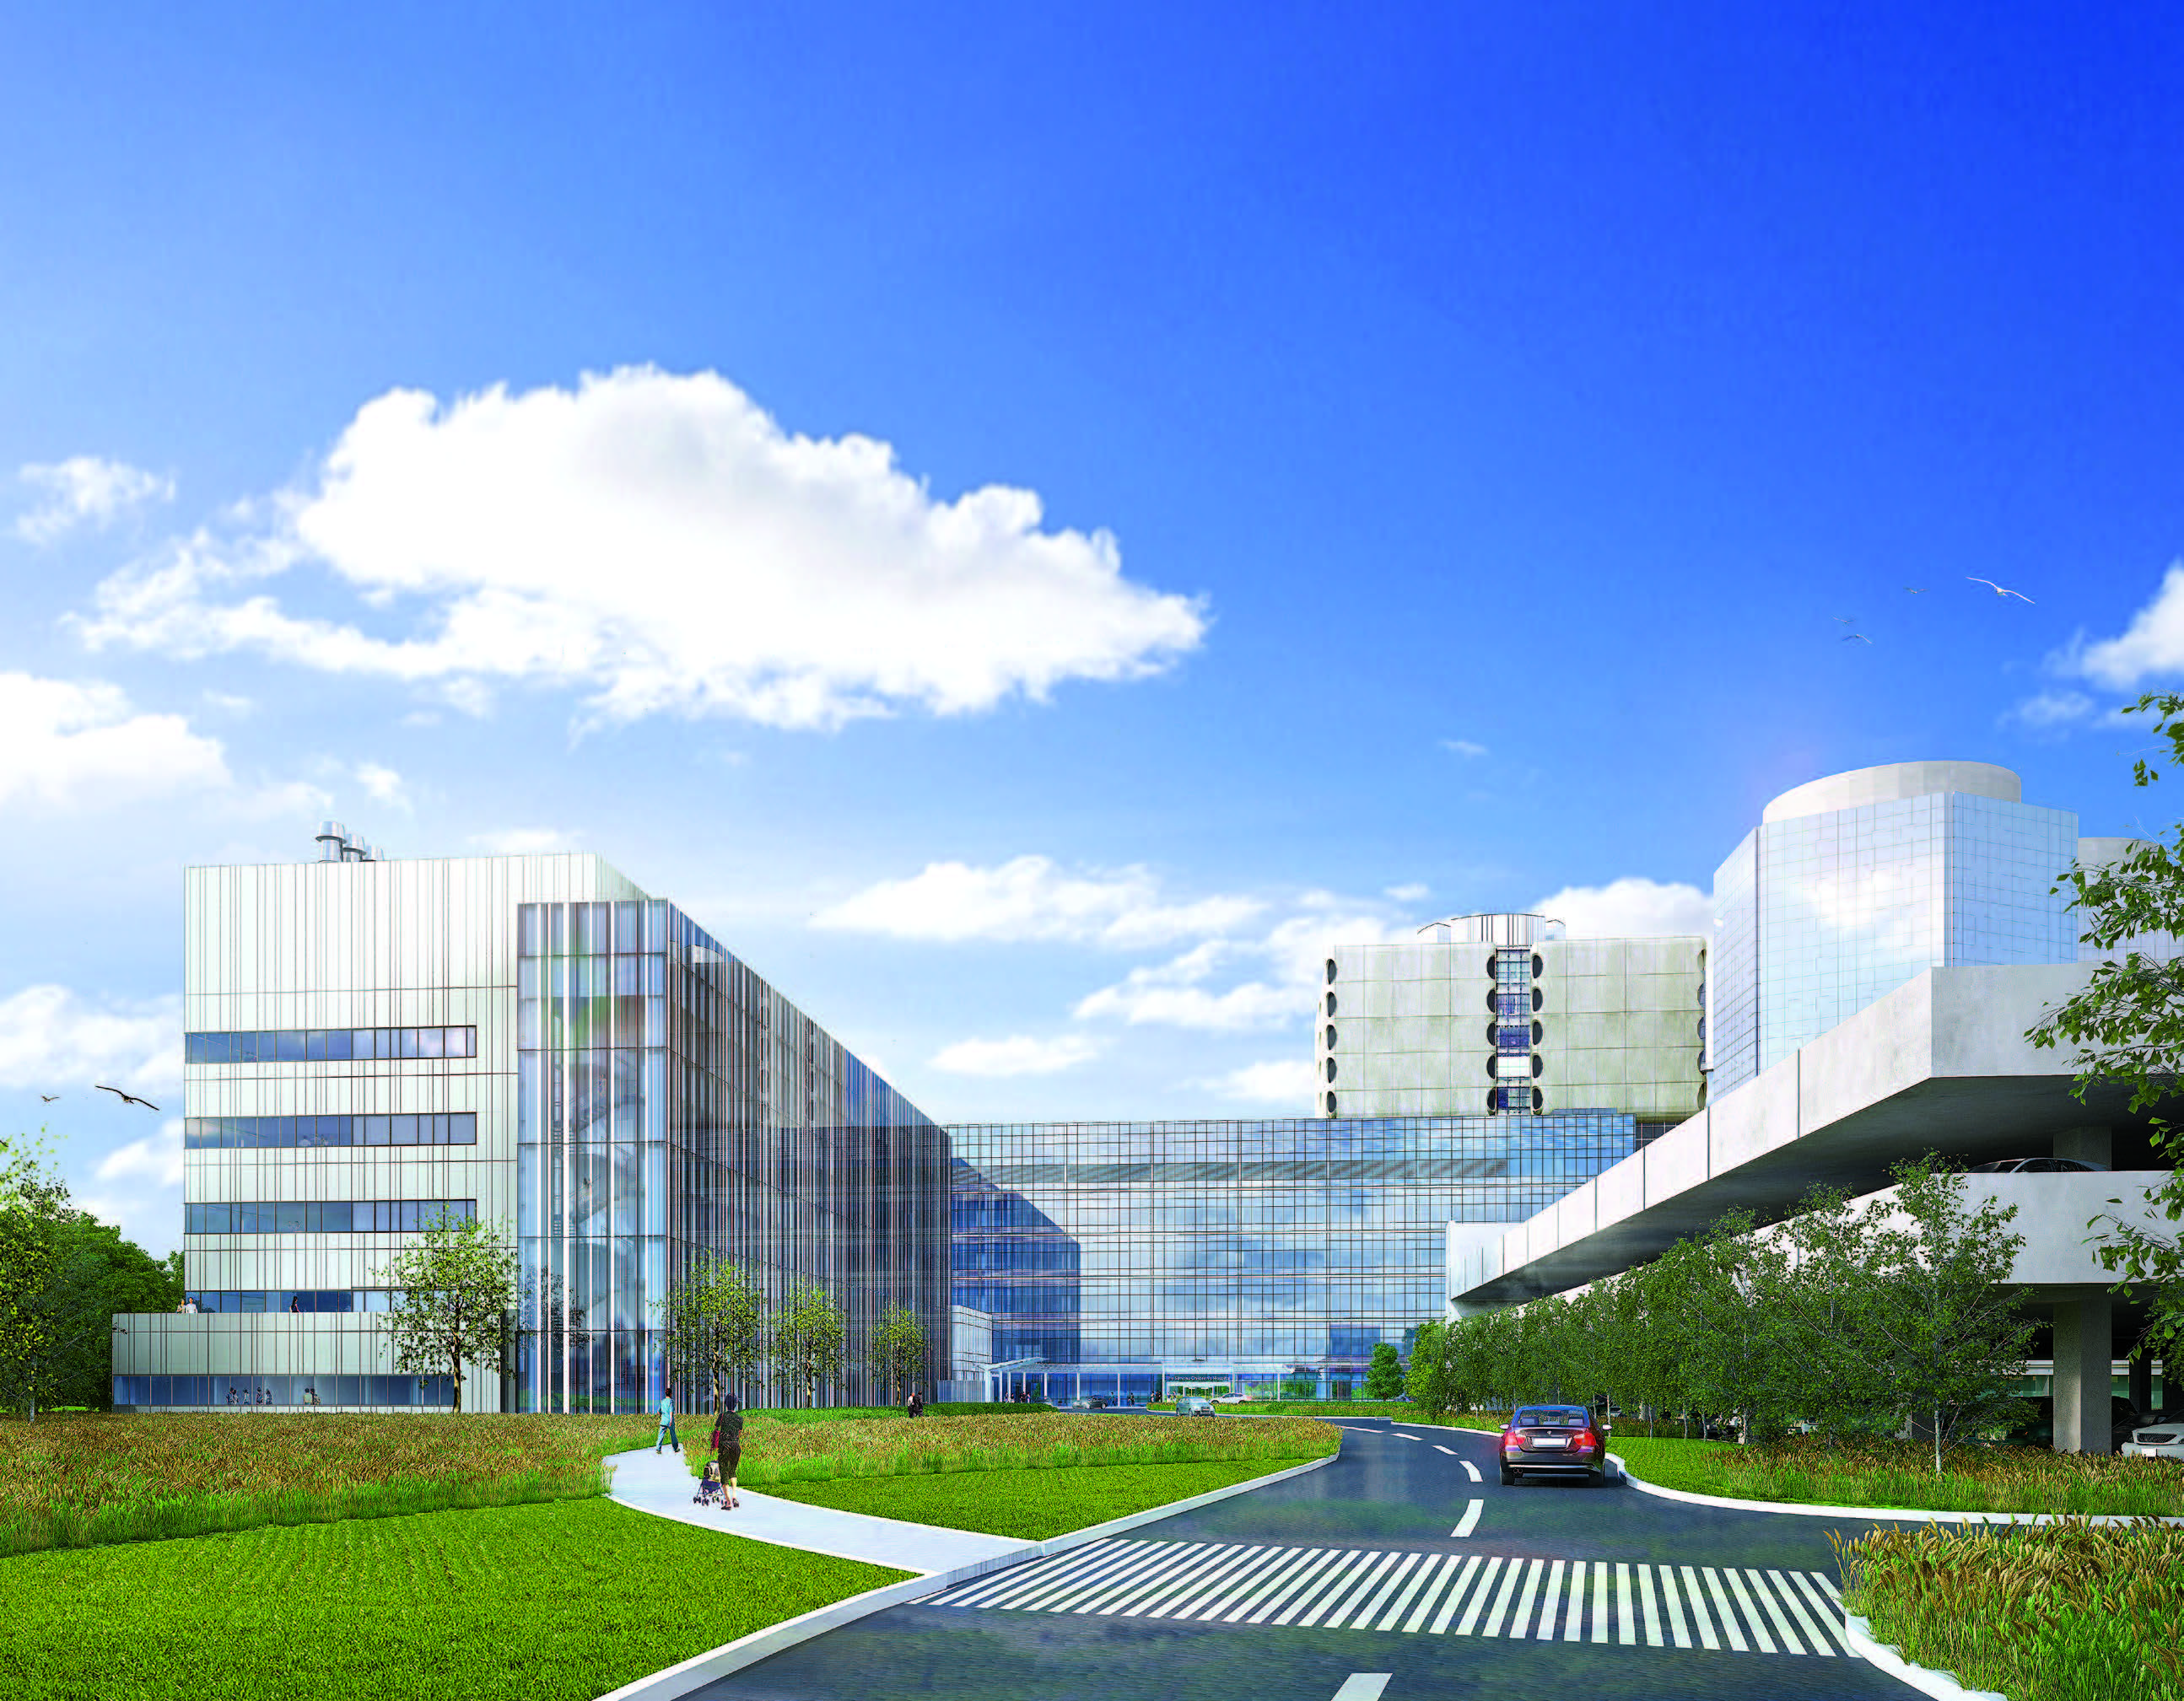 The new multimilliondollar Medical and Research Translation (MART) building is set to open its doors in fall 2018.